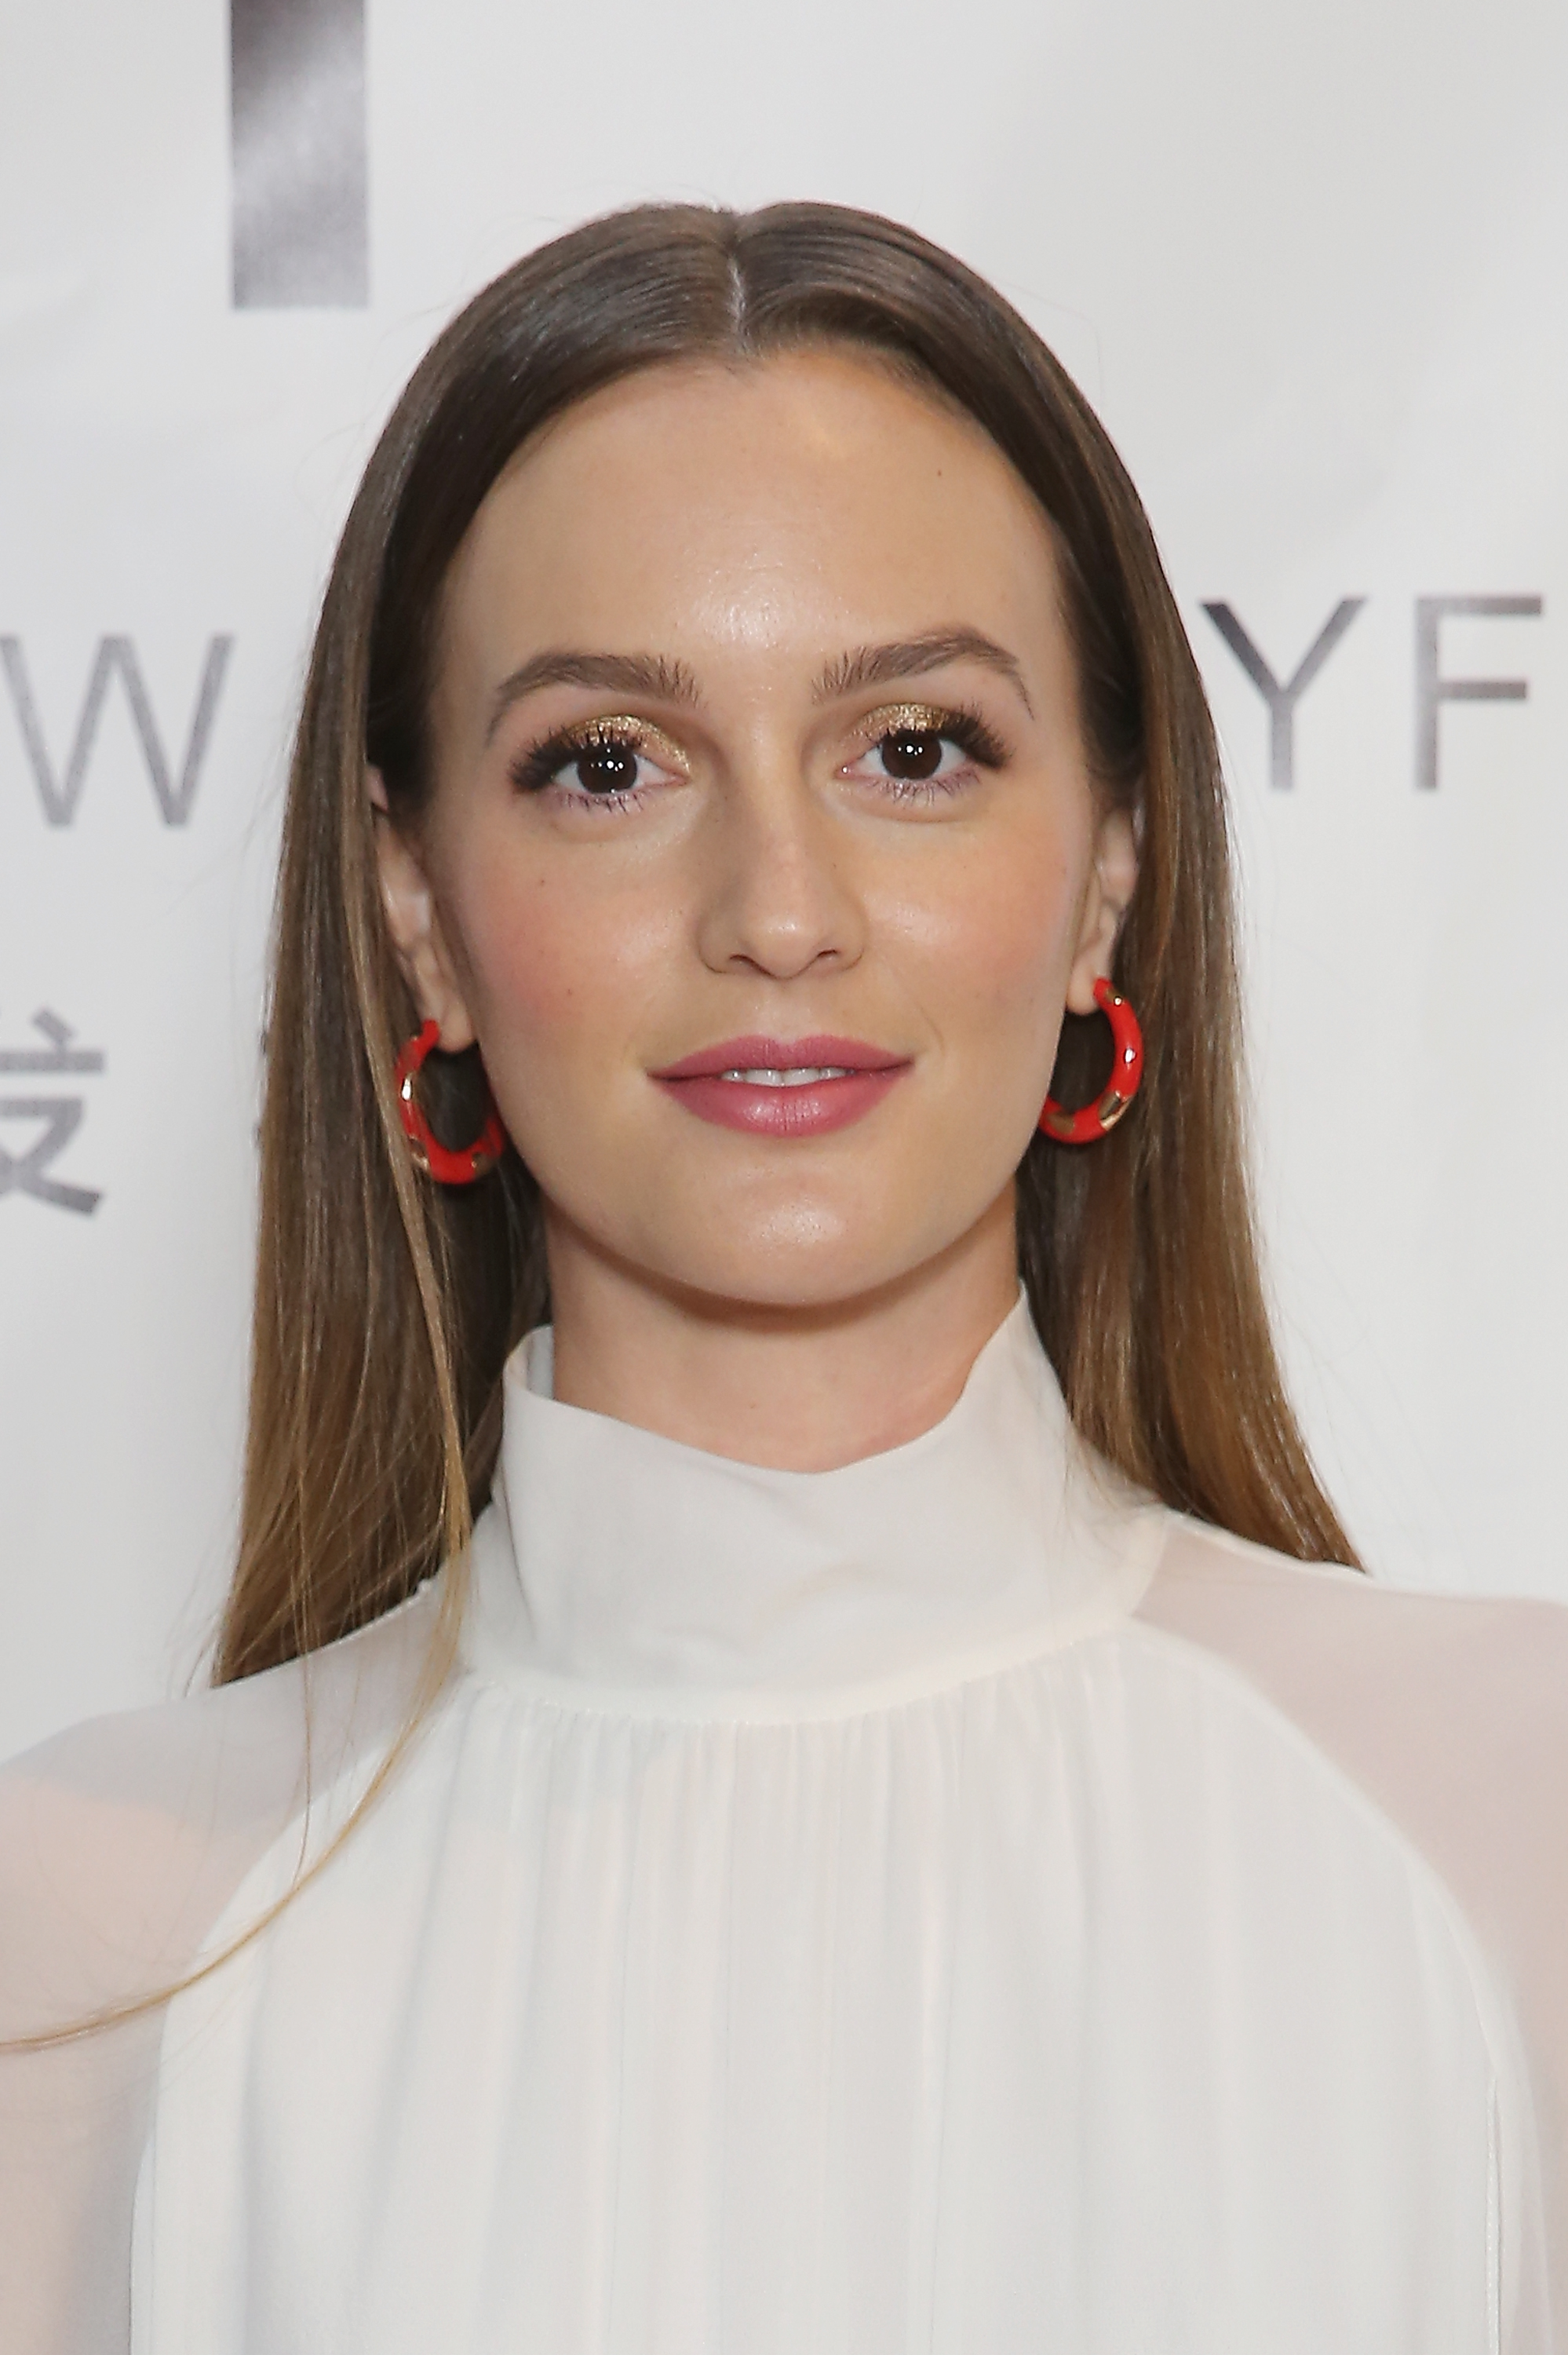 Actress, Leighton Meester, attends the Naersi fashion show during New York Fashion Week: The Shows at American Museum of Natural History on September 10, 2017 in New York City.